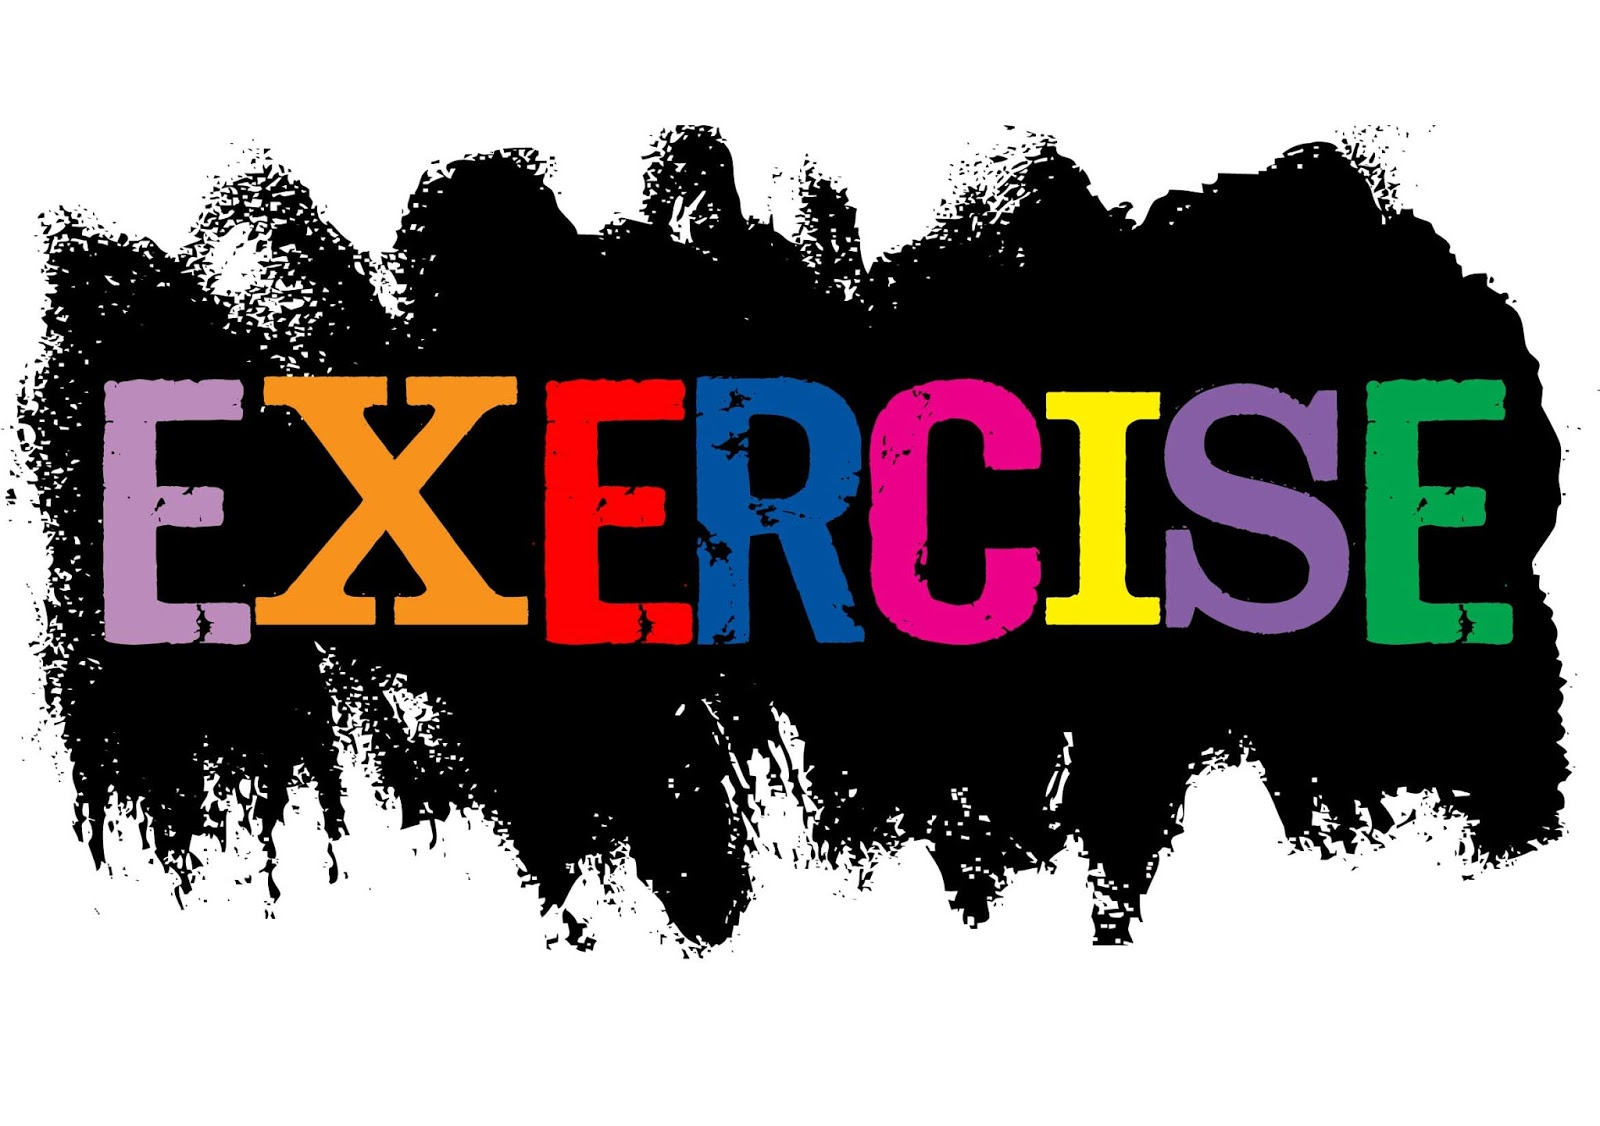 Essay On The Importance Of Exercise For Good Health